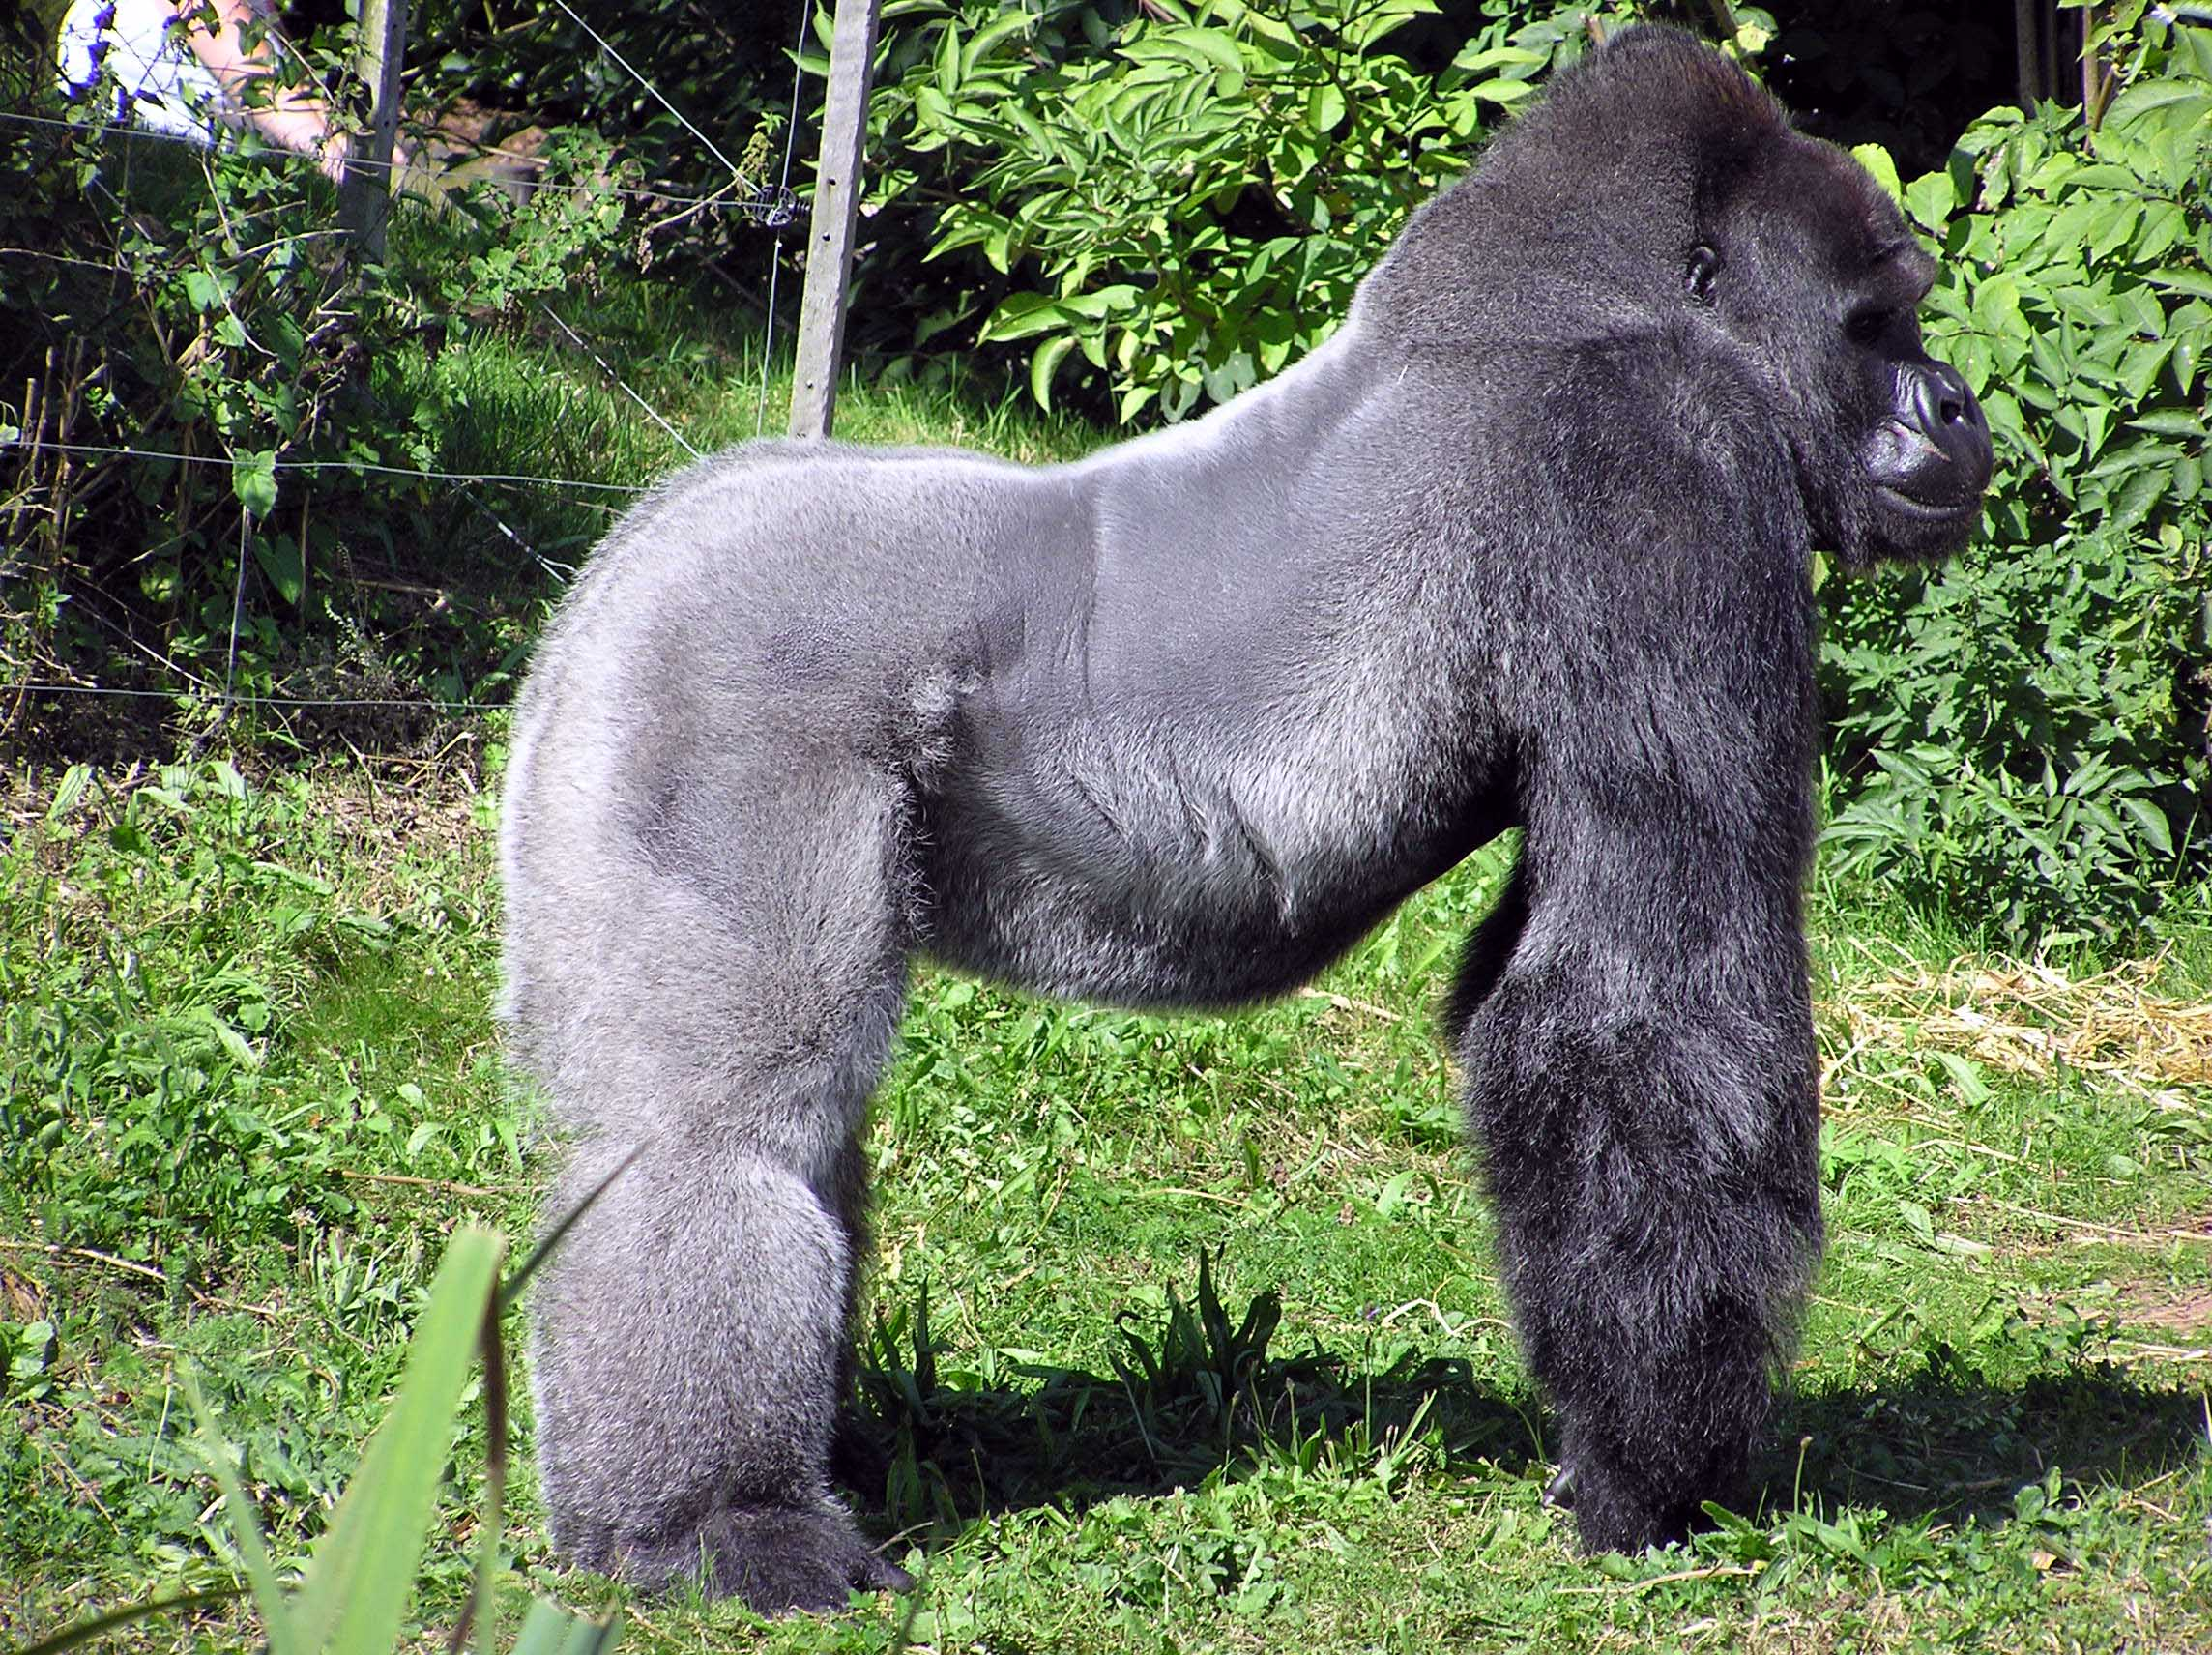 https://upload.wikimedia.org/wikipedia/commons/f/fd/Bristol.zoo.western.lowland.gorilla.arp.jpg